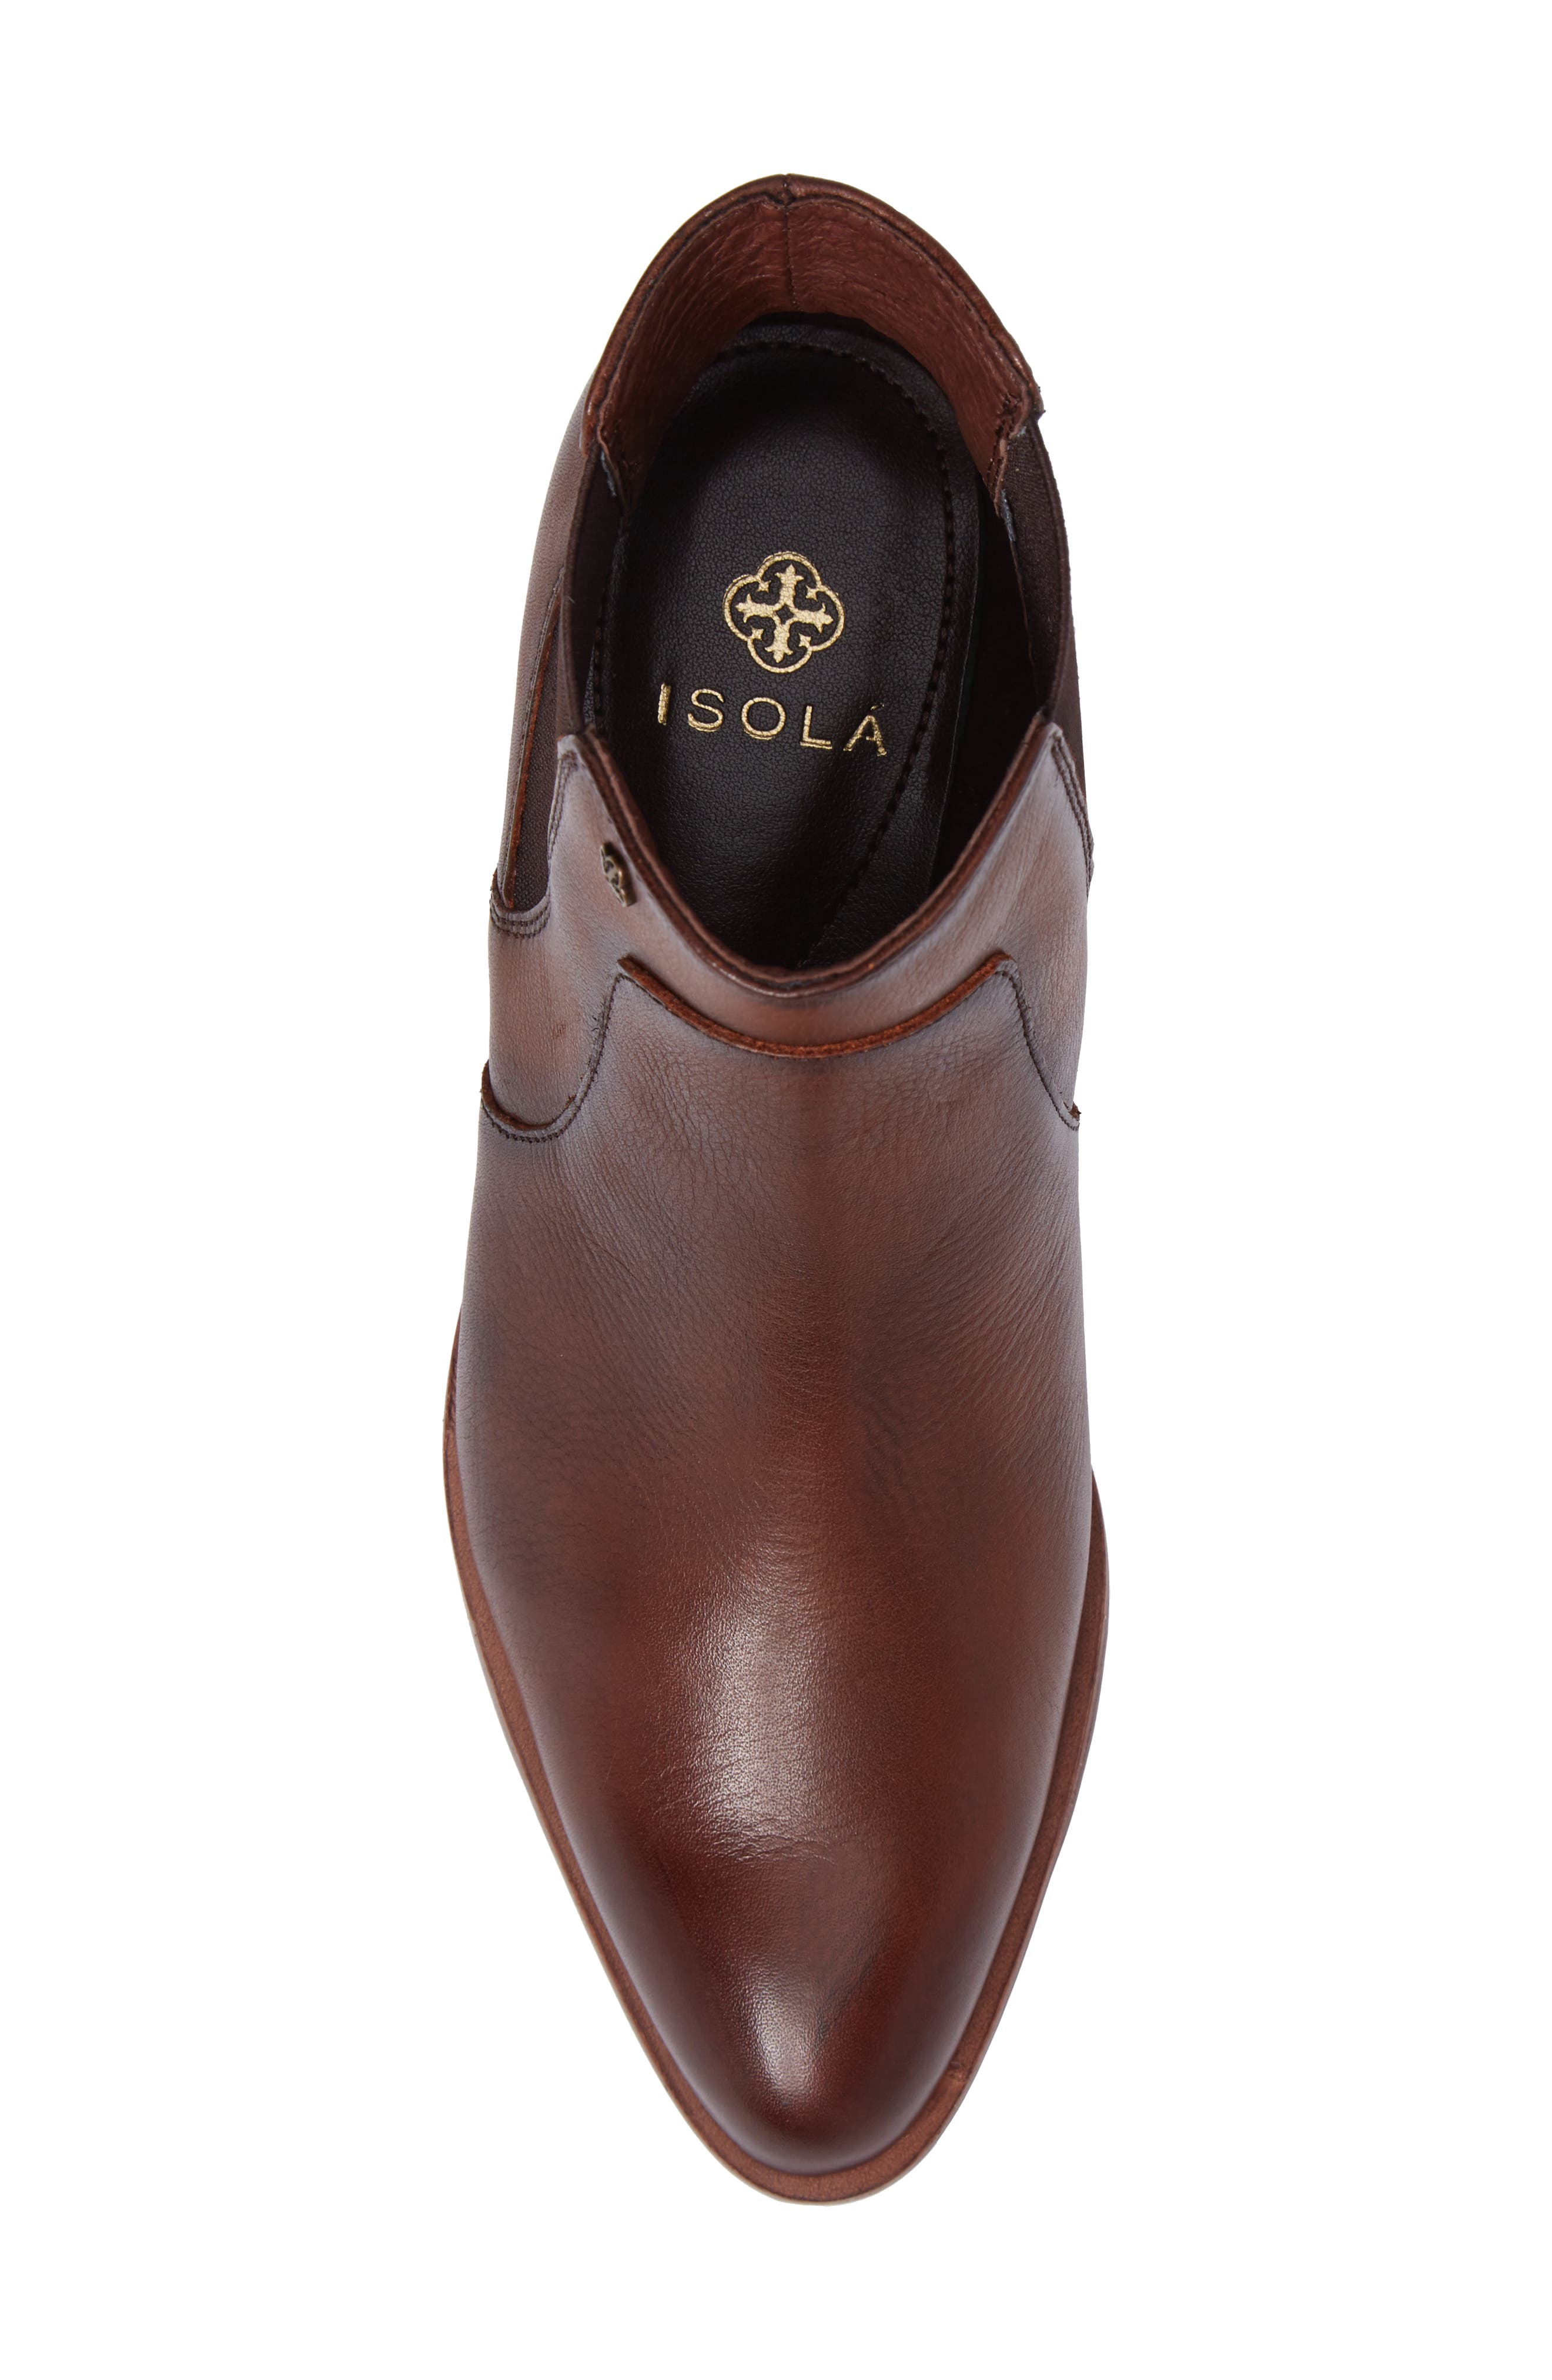 Mora Bootie,                             Alternate thumbnail 5, color,                             Whiskey Leather